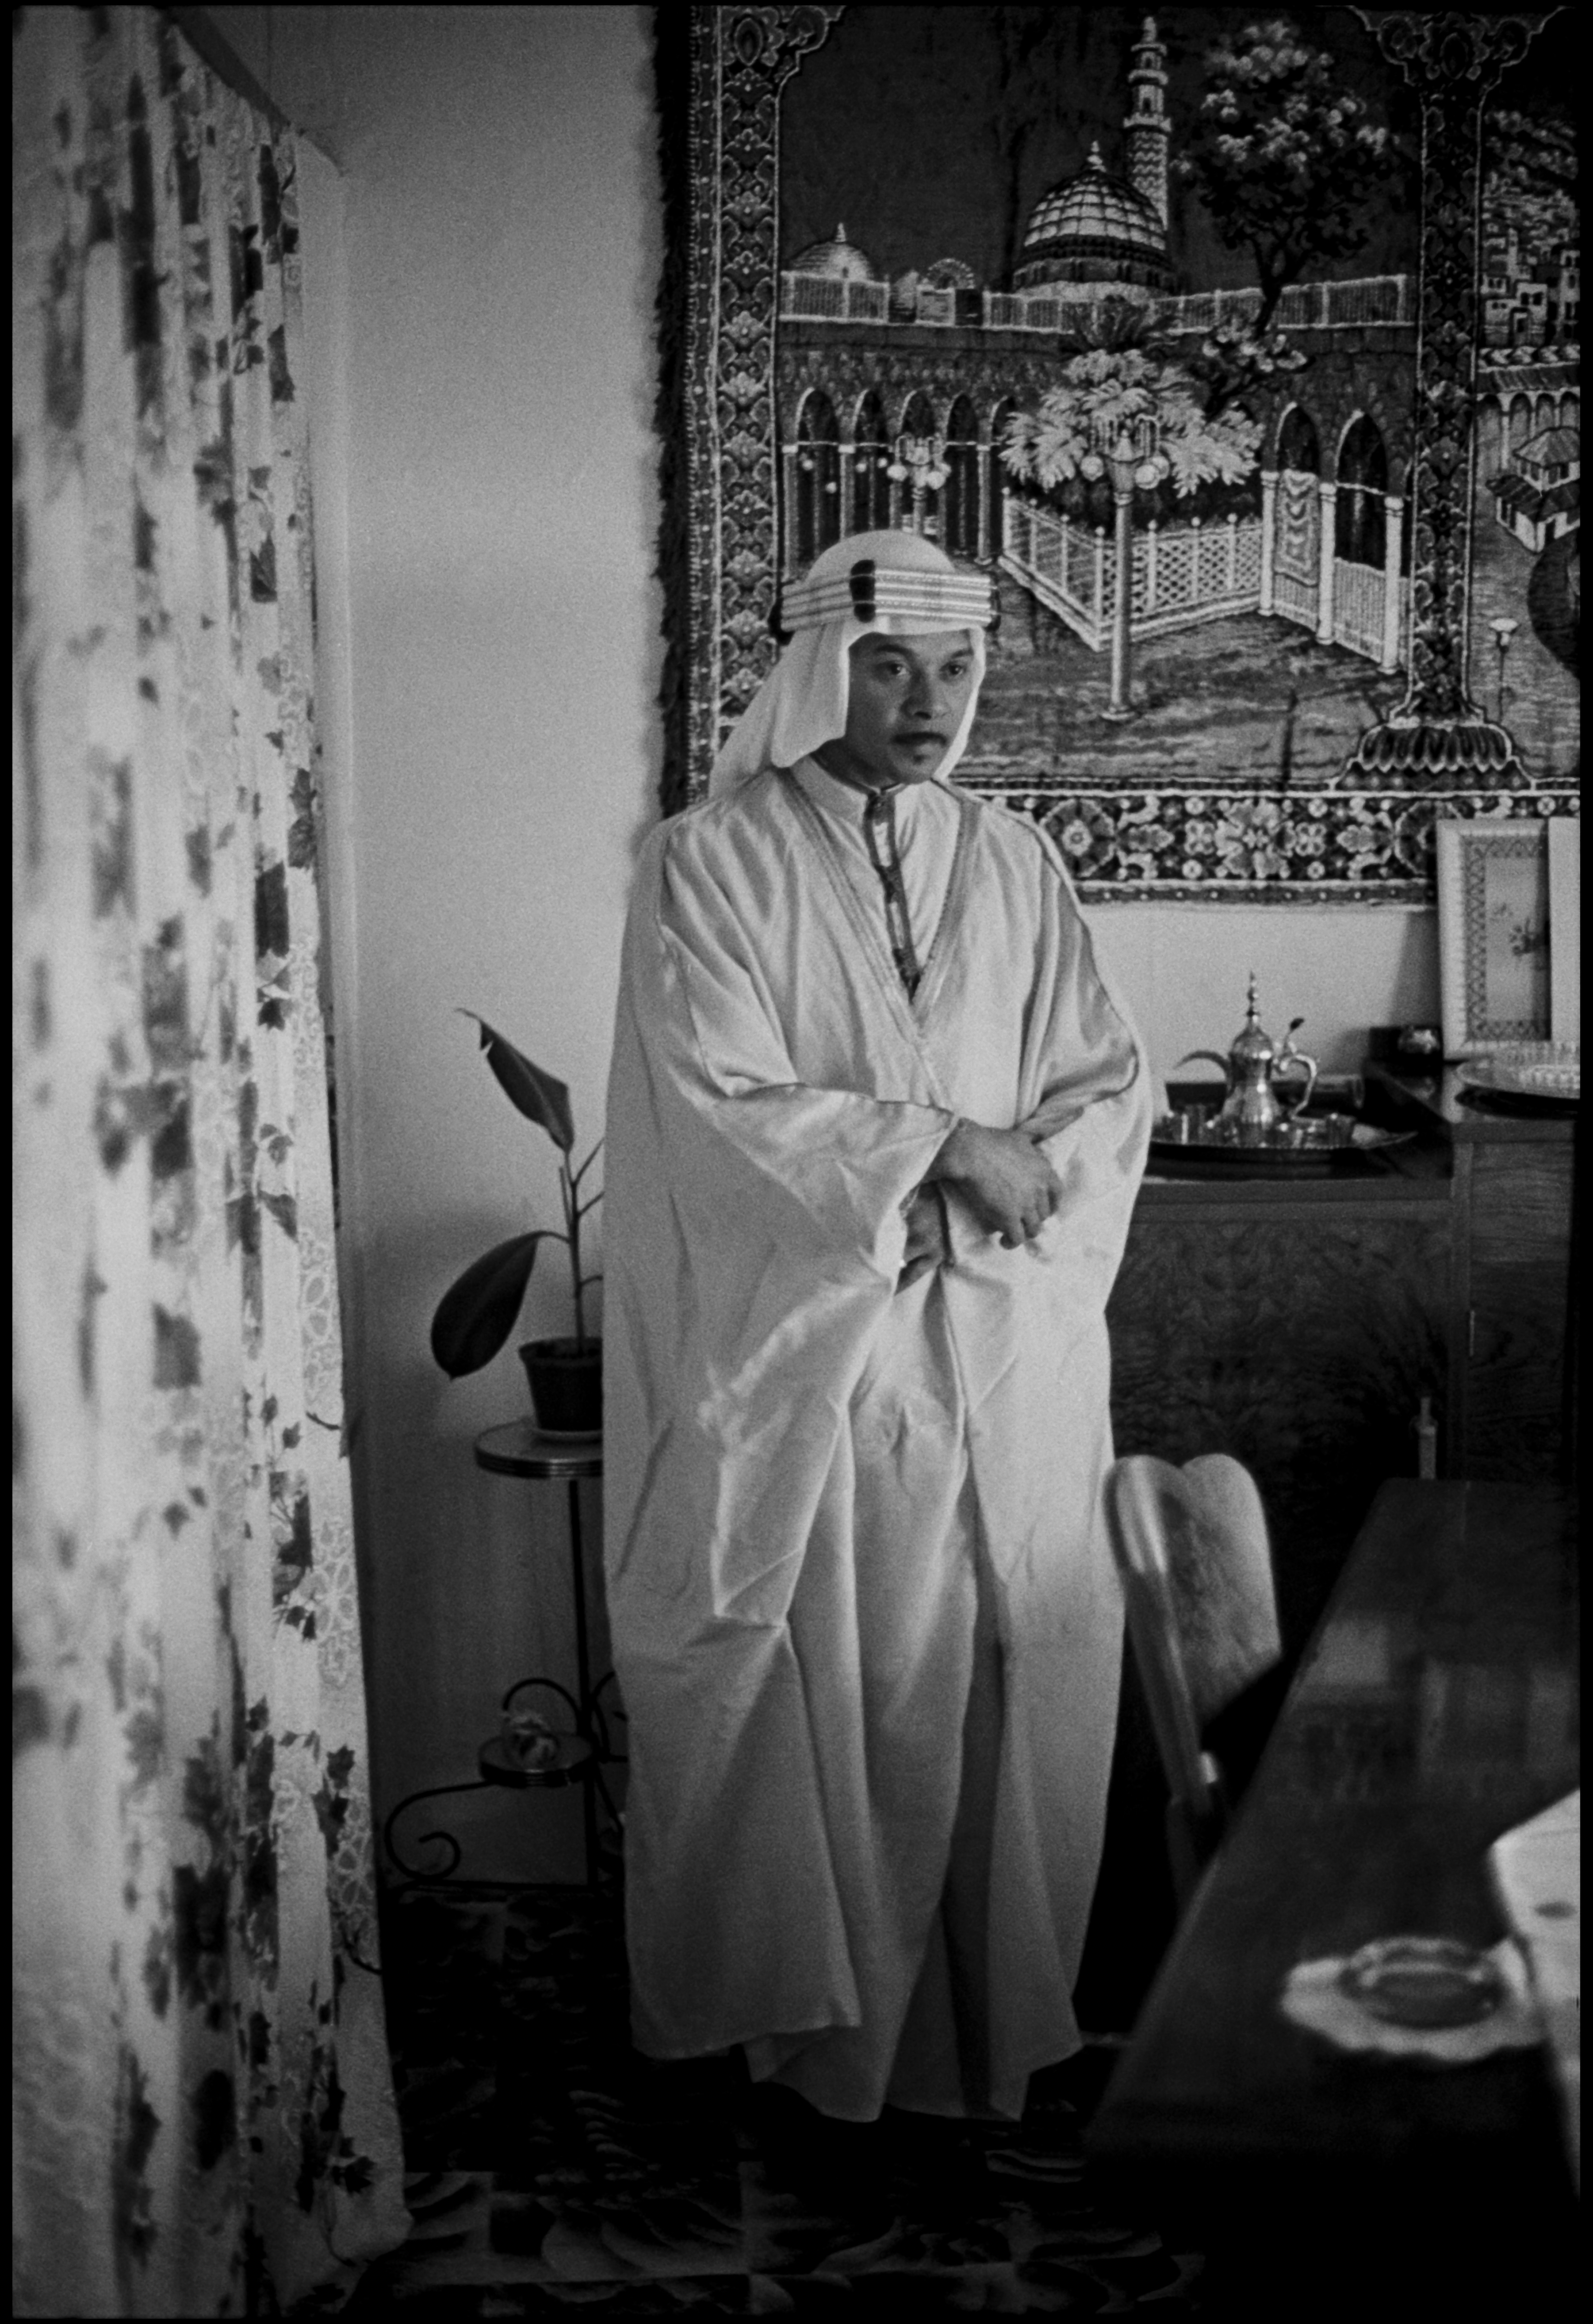 a man who had performed the hajj pilgrimage in the 1970s poses for david brown in a traditional arab outfit